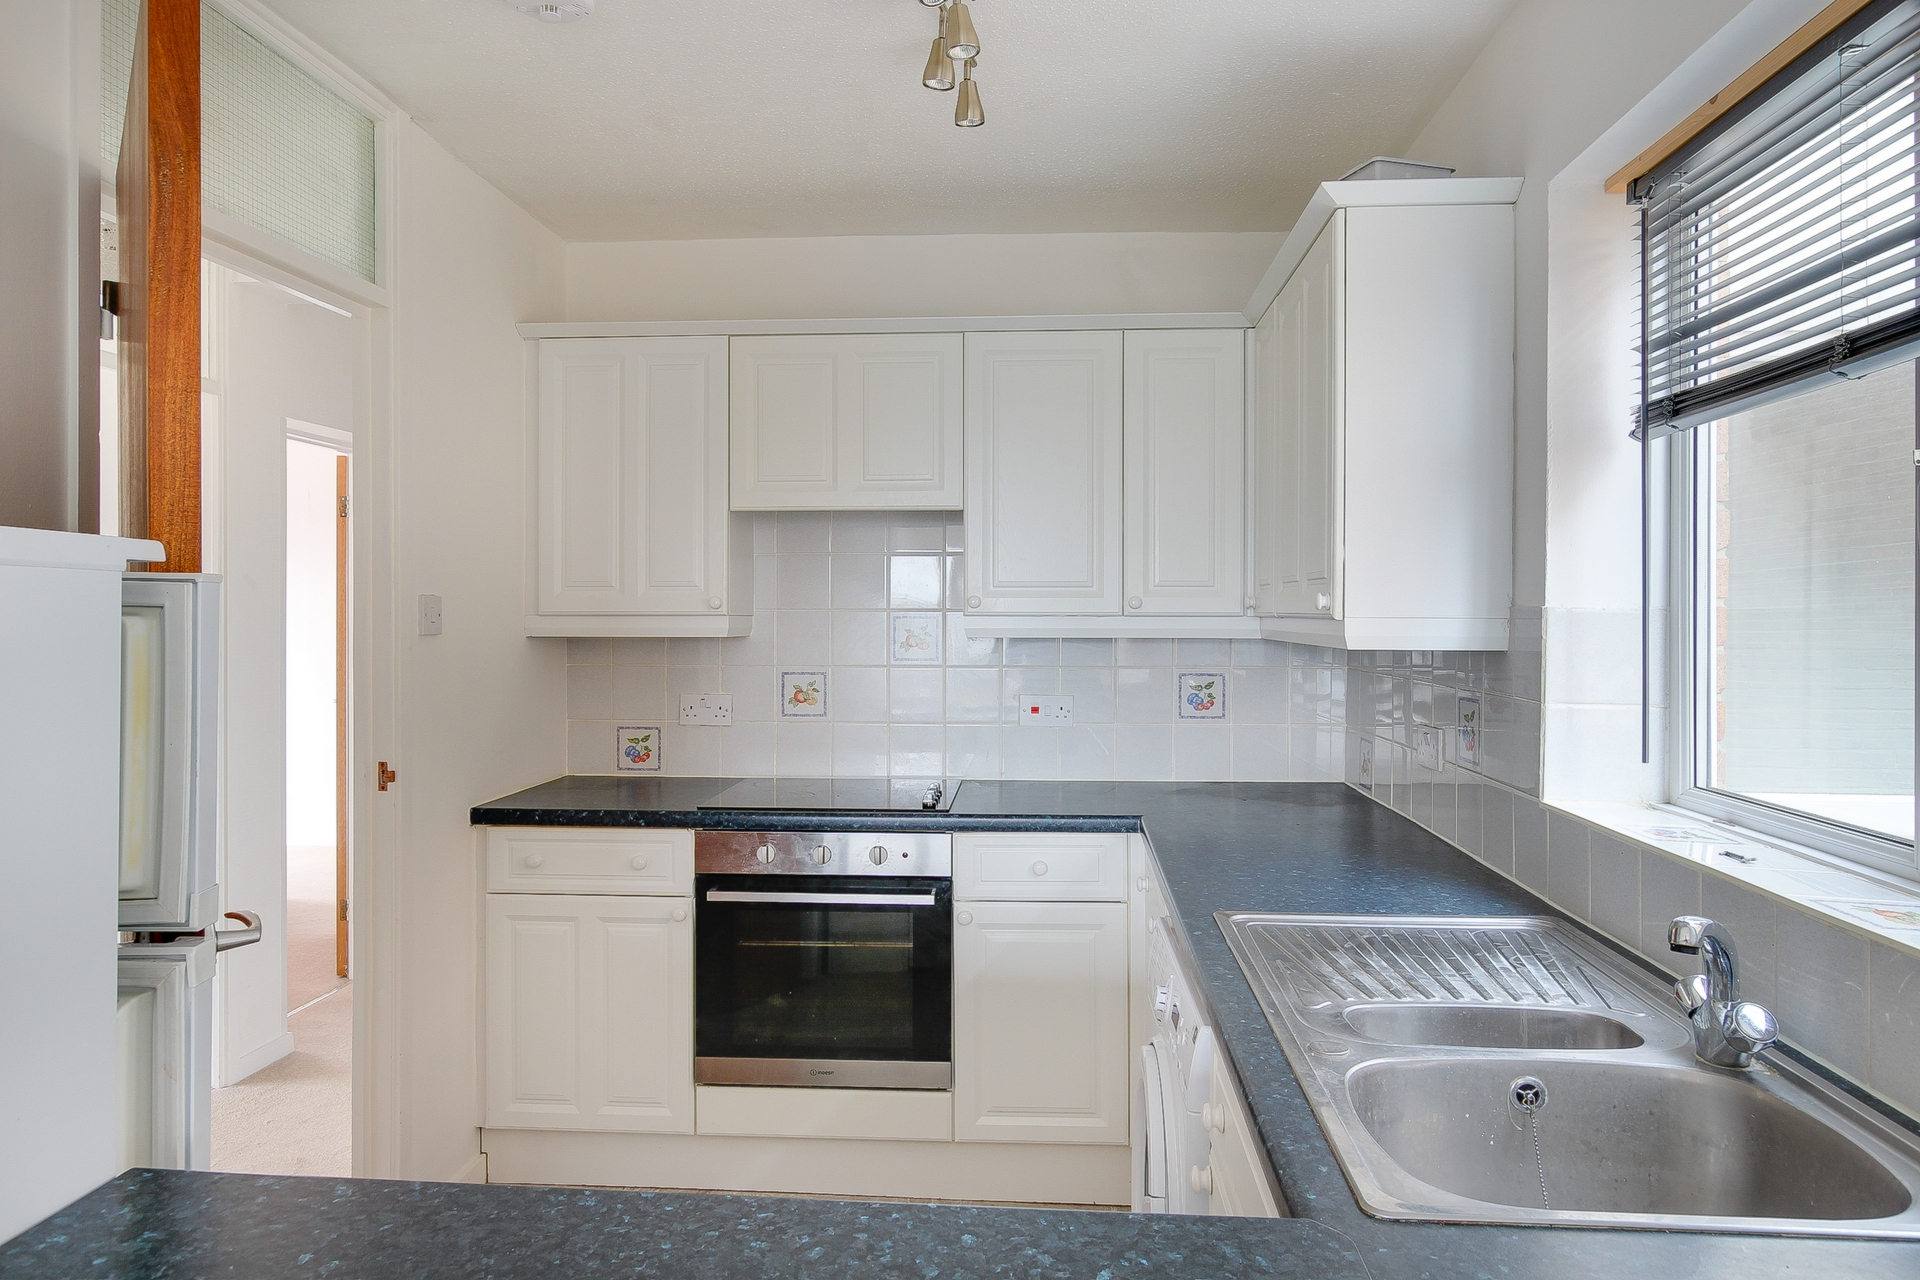 2 bed apartment to rent in The Parade, Birchington, CT7, CT7